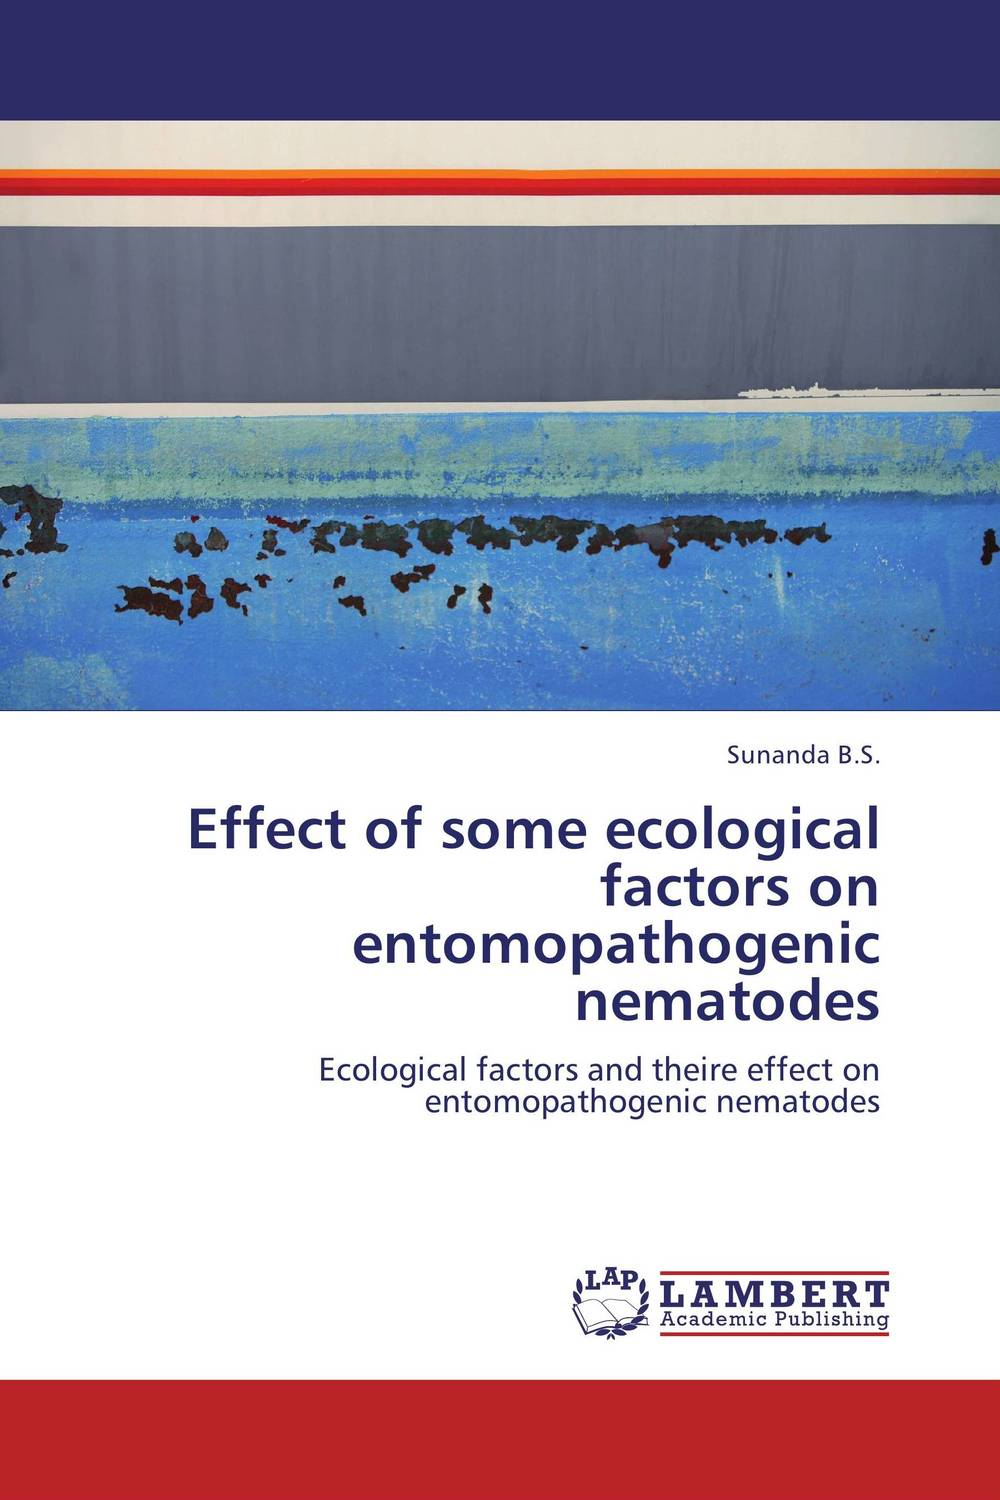 Effect of some ecological factors on entomopathogenic nematodes relationship between entomopathogenic nematodes and some tephritids